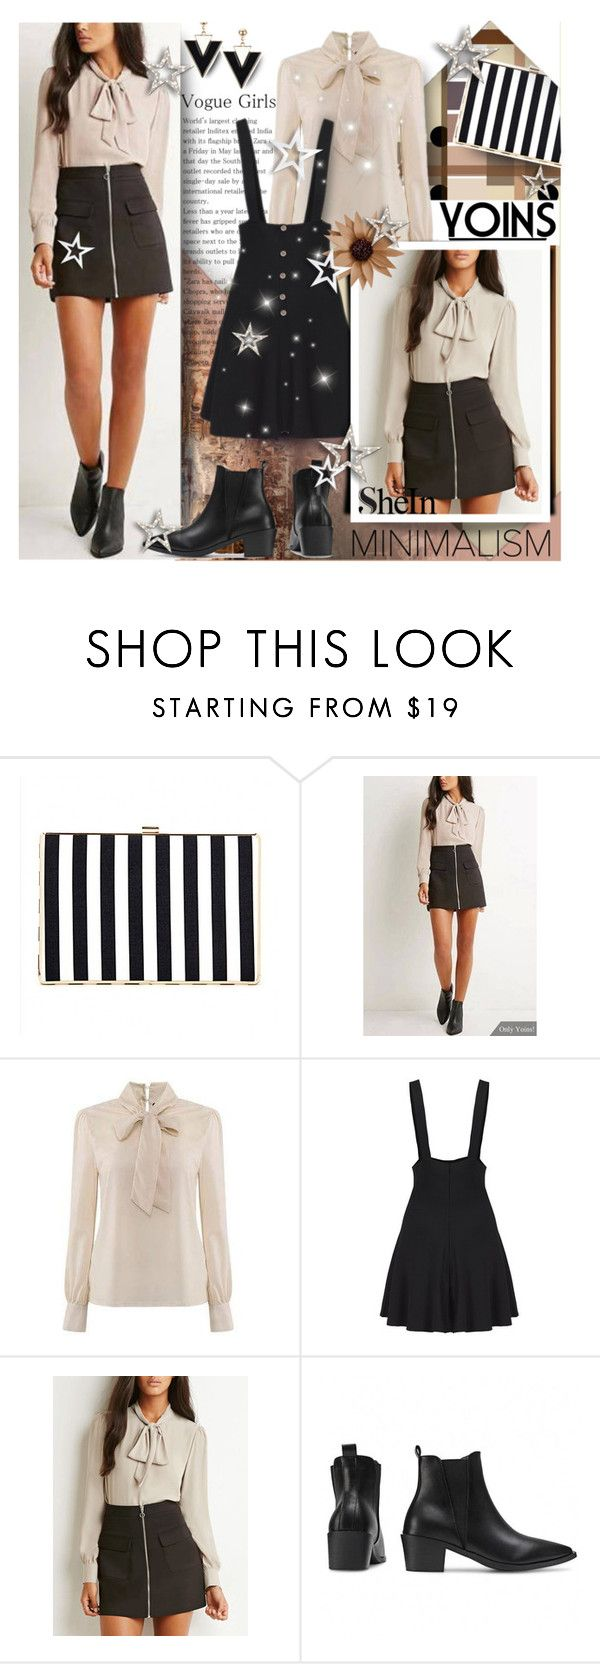 """""""Yoins"""" by tinaisapenguin ❤ liked on Polyvore featuring Trilogy, contest, accessories, springfashion, contestentry and yoins"""